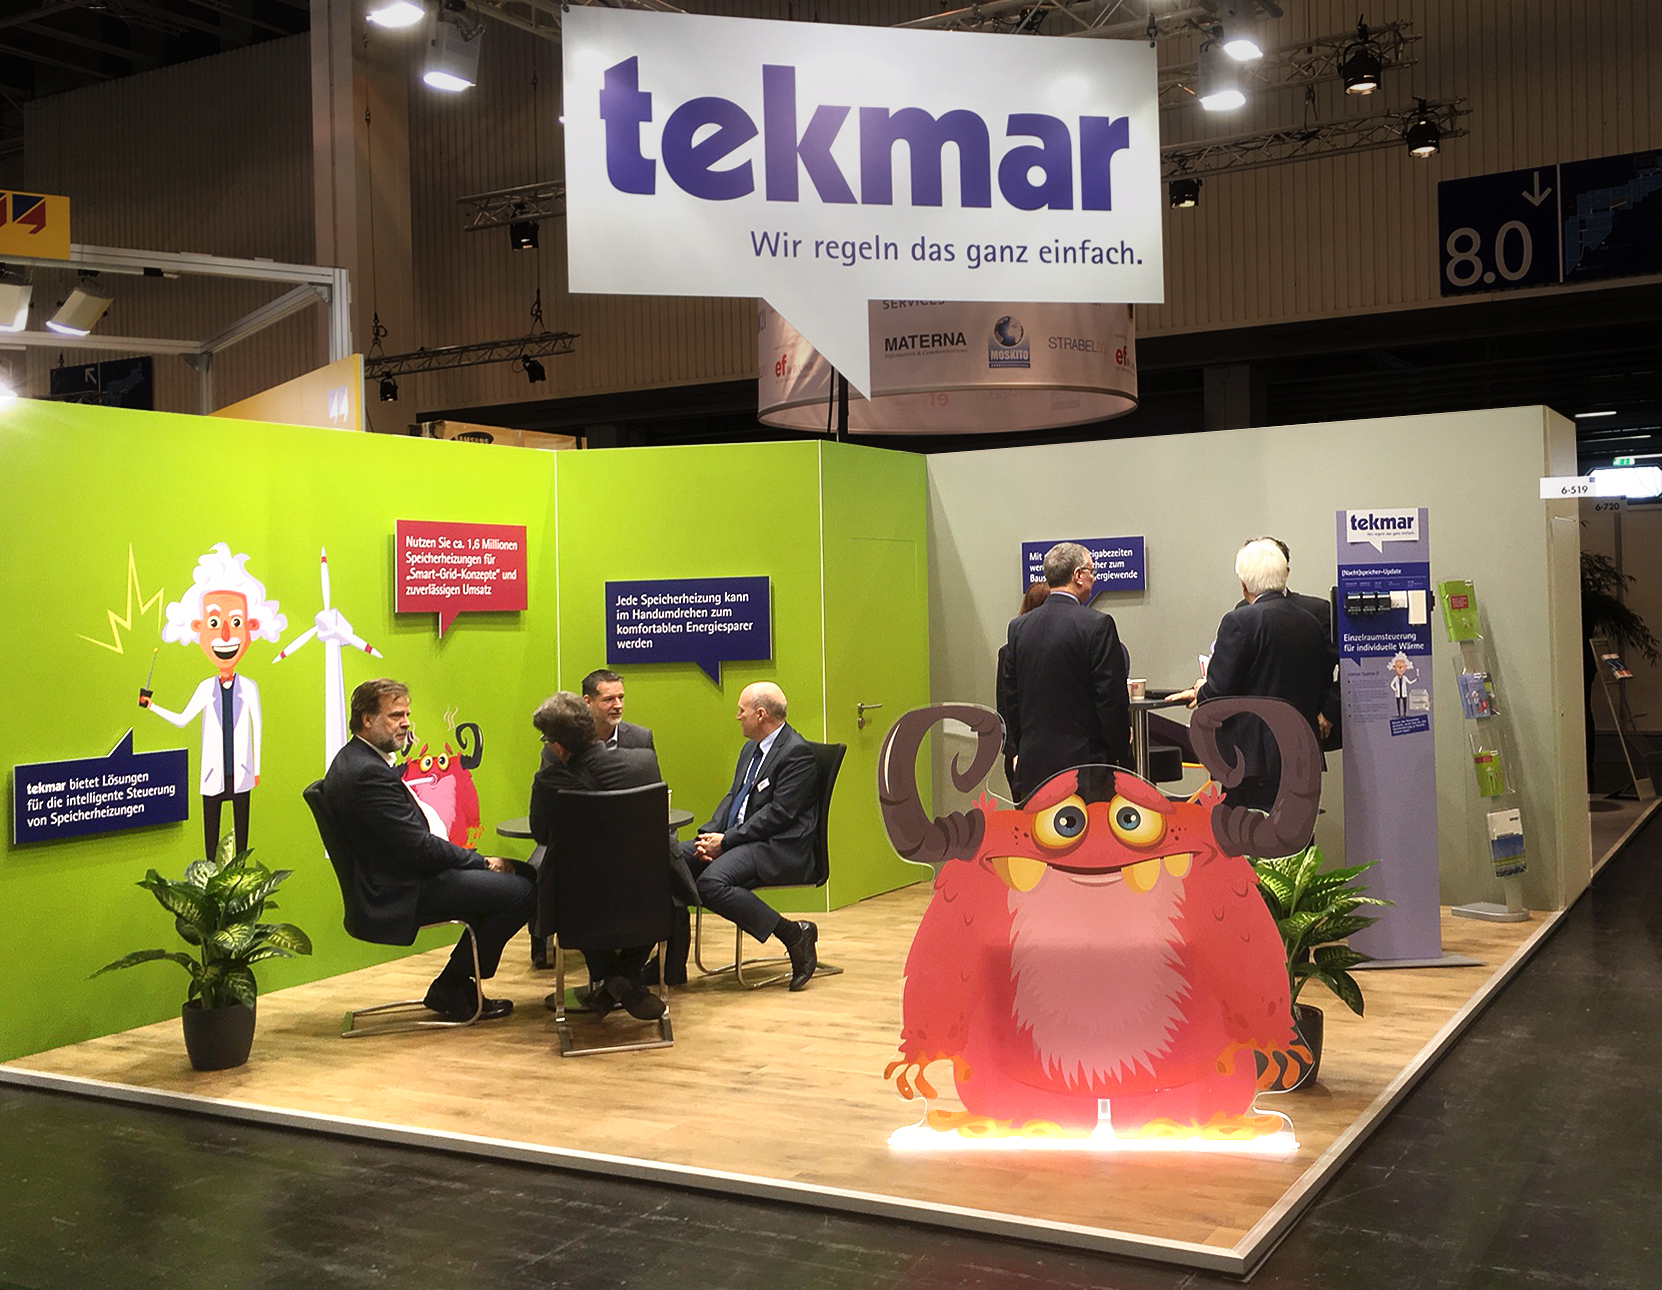 tekmar auf der E-world energy & water